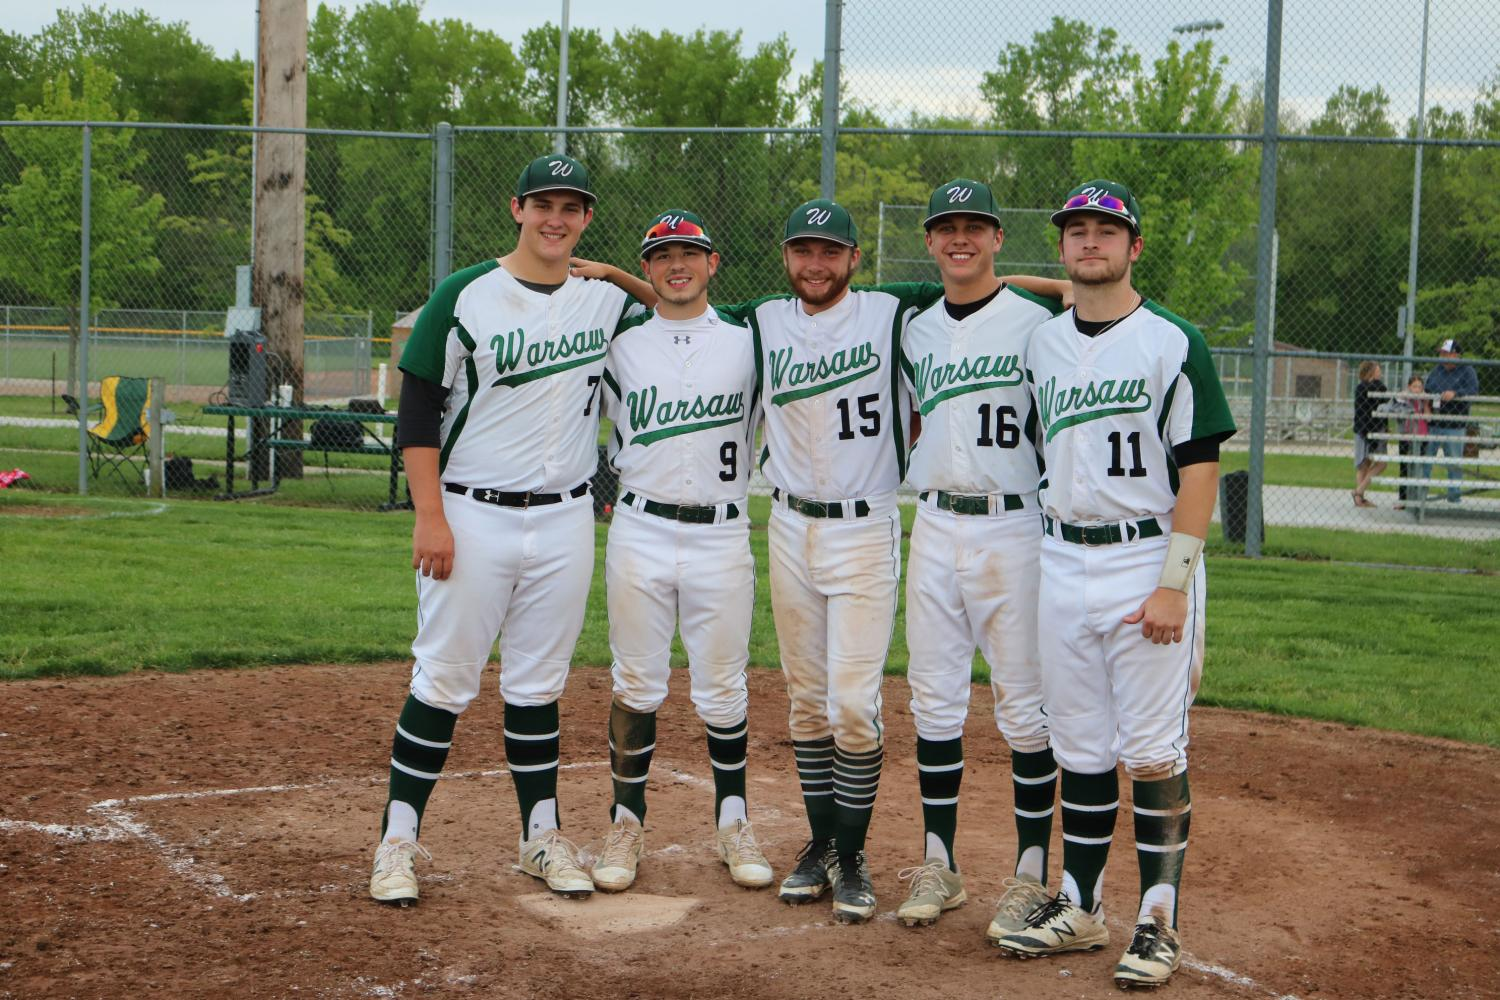 Seniors+Austin+Gardner%2C+Corey+Callahan%2C+Hunter+Bagley%2C+Cade+Chiles%2C+and+Will+Bunch+stand+together+at+the+plate+during+senior+night.+The+group+has+been+noticed+for+showing+their+friendship+on+and+off+the+field.